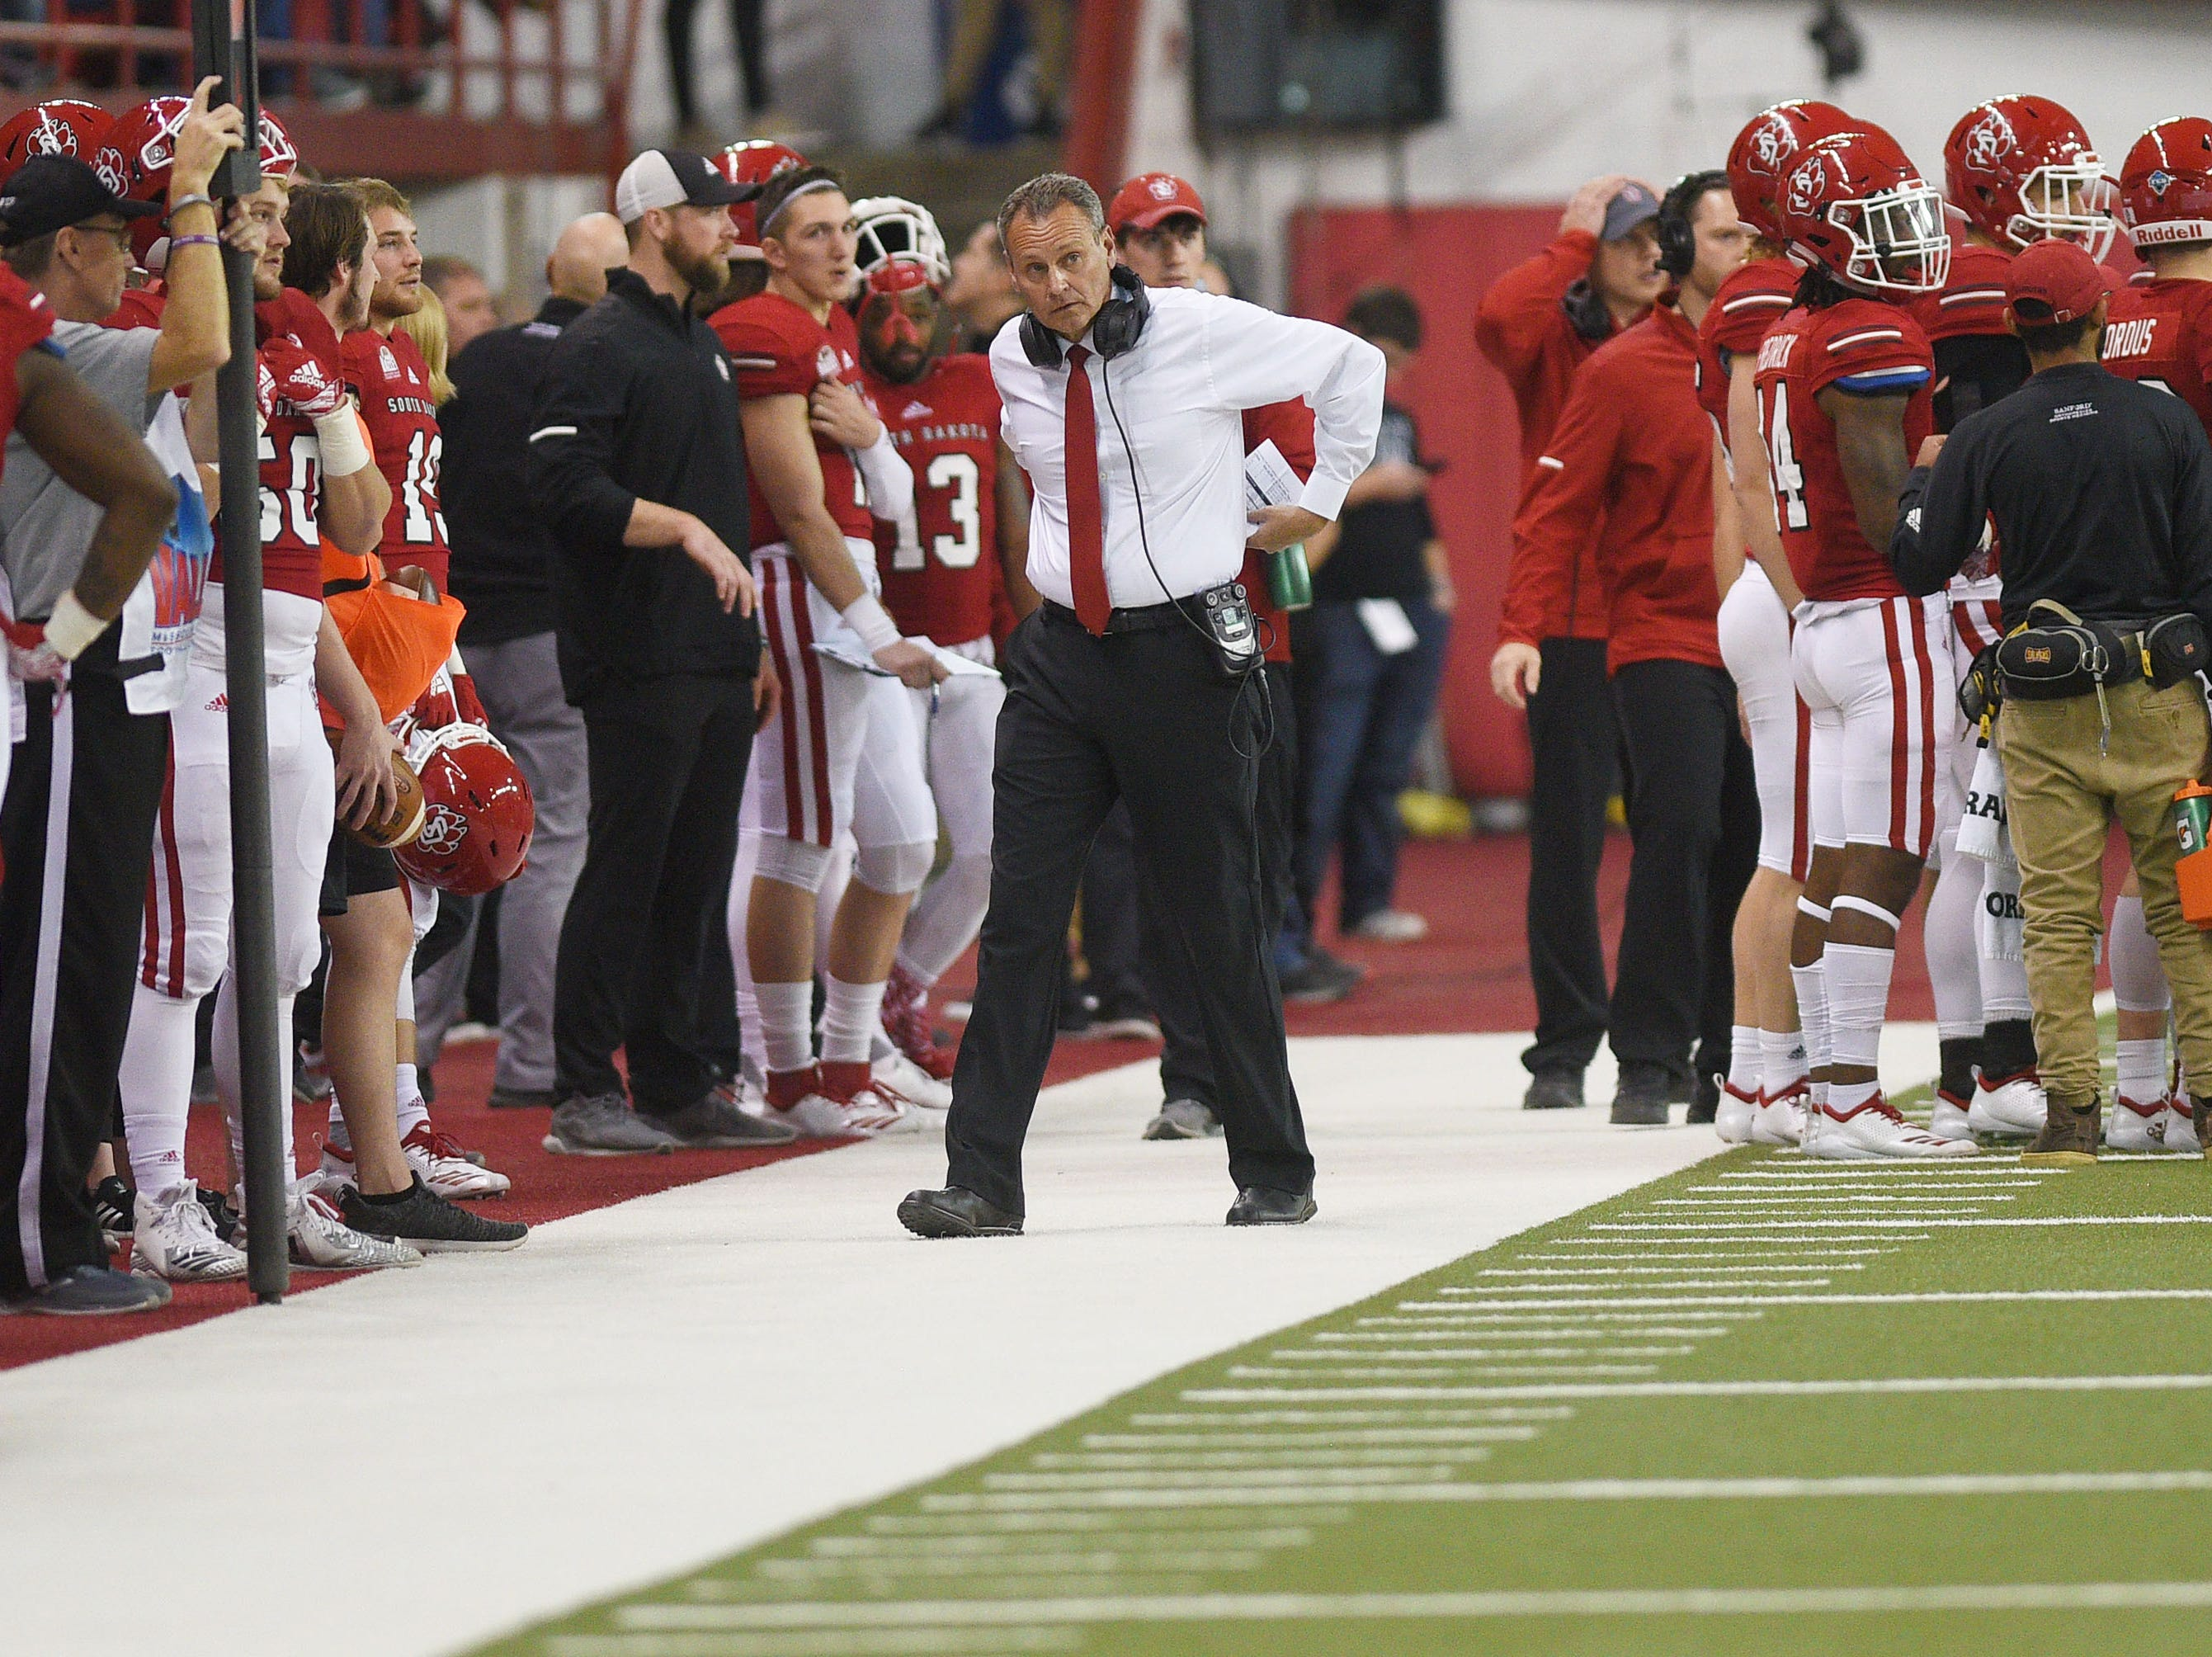 USD's Bob Nielson prepares to walk off the field after the win against Western Illinois Saturday, Nov. 10, at the DakotaDome in Vermillion.